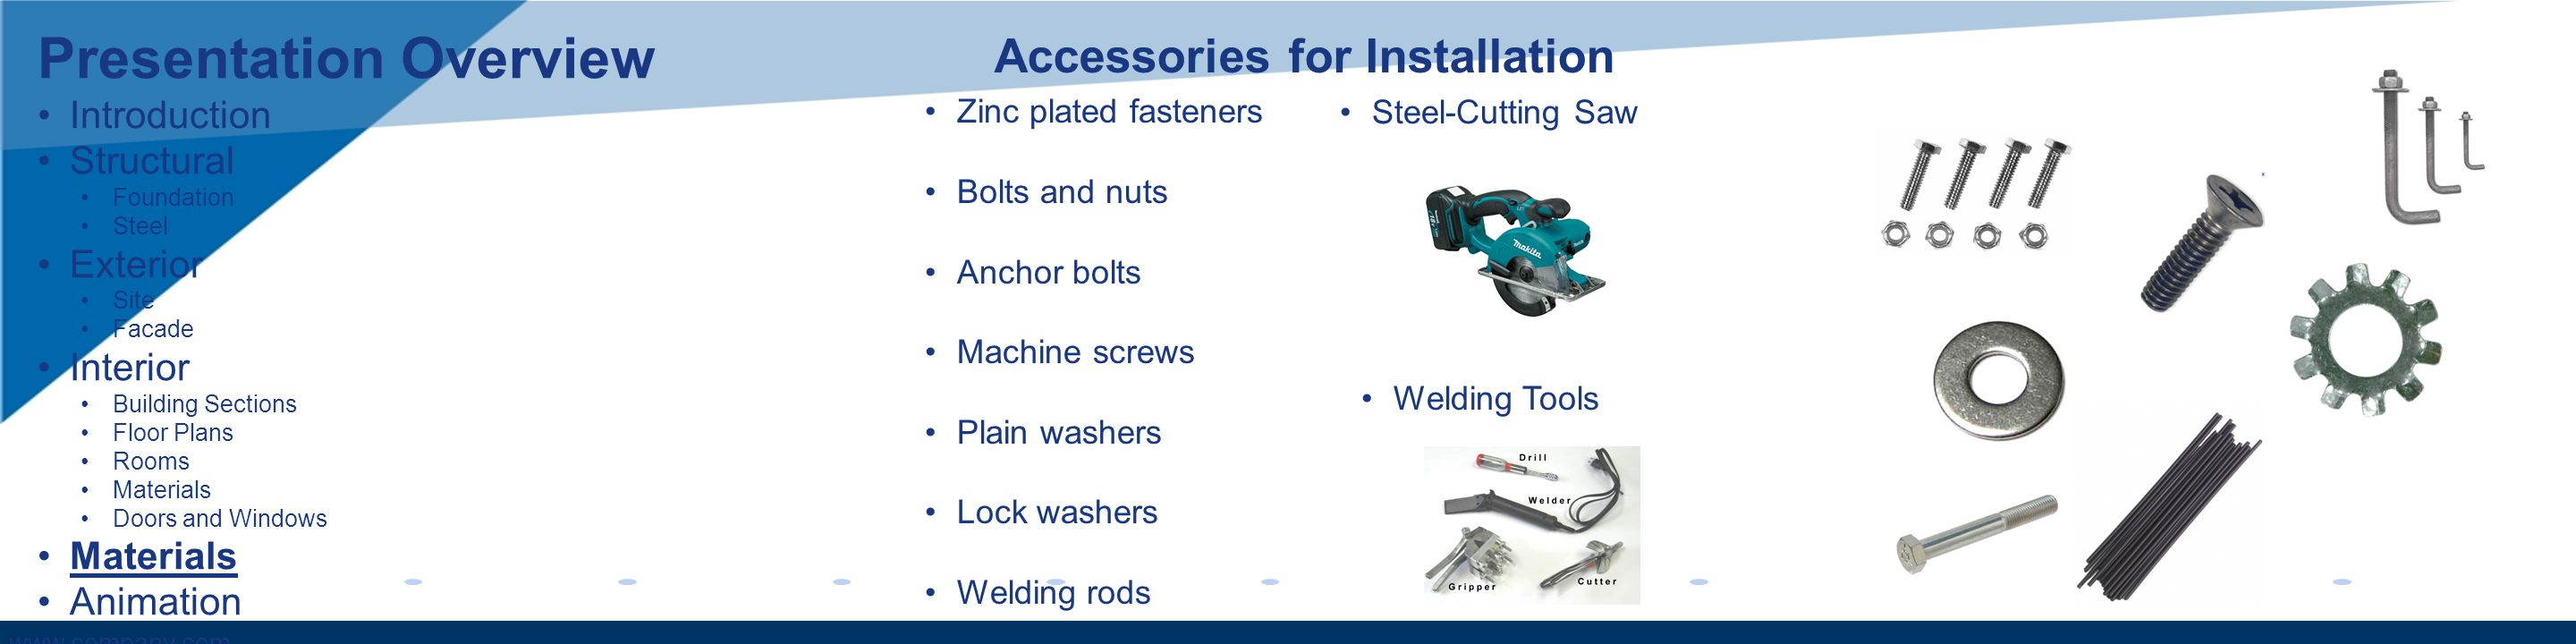 www.company.com Zinc plated fasteners Bolts and nuts Anchor bolts Machine screws Plain washers Lock washers Welding rods Accessories for Installation Presentation Overview Introduction Structural Foundation Steel Exterior Site Facade Interior Building Sections Floor Plans Rooms Materials Doors and Windows Materials Animation Steel-Cutting Saw Welding Tools